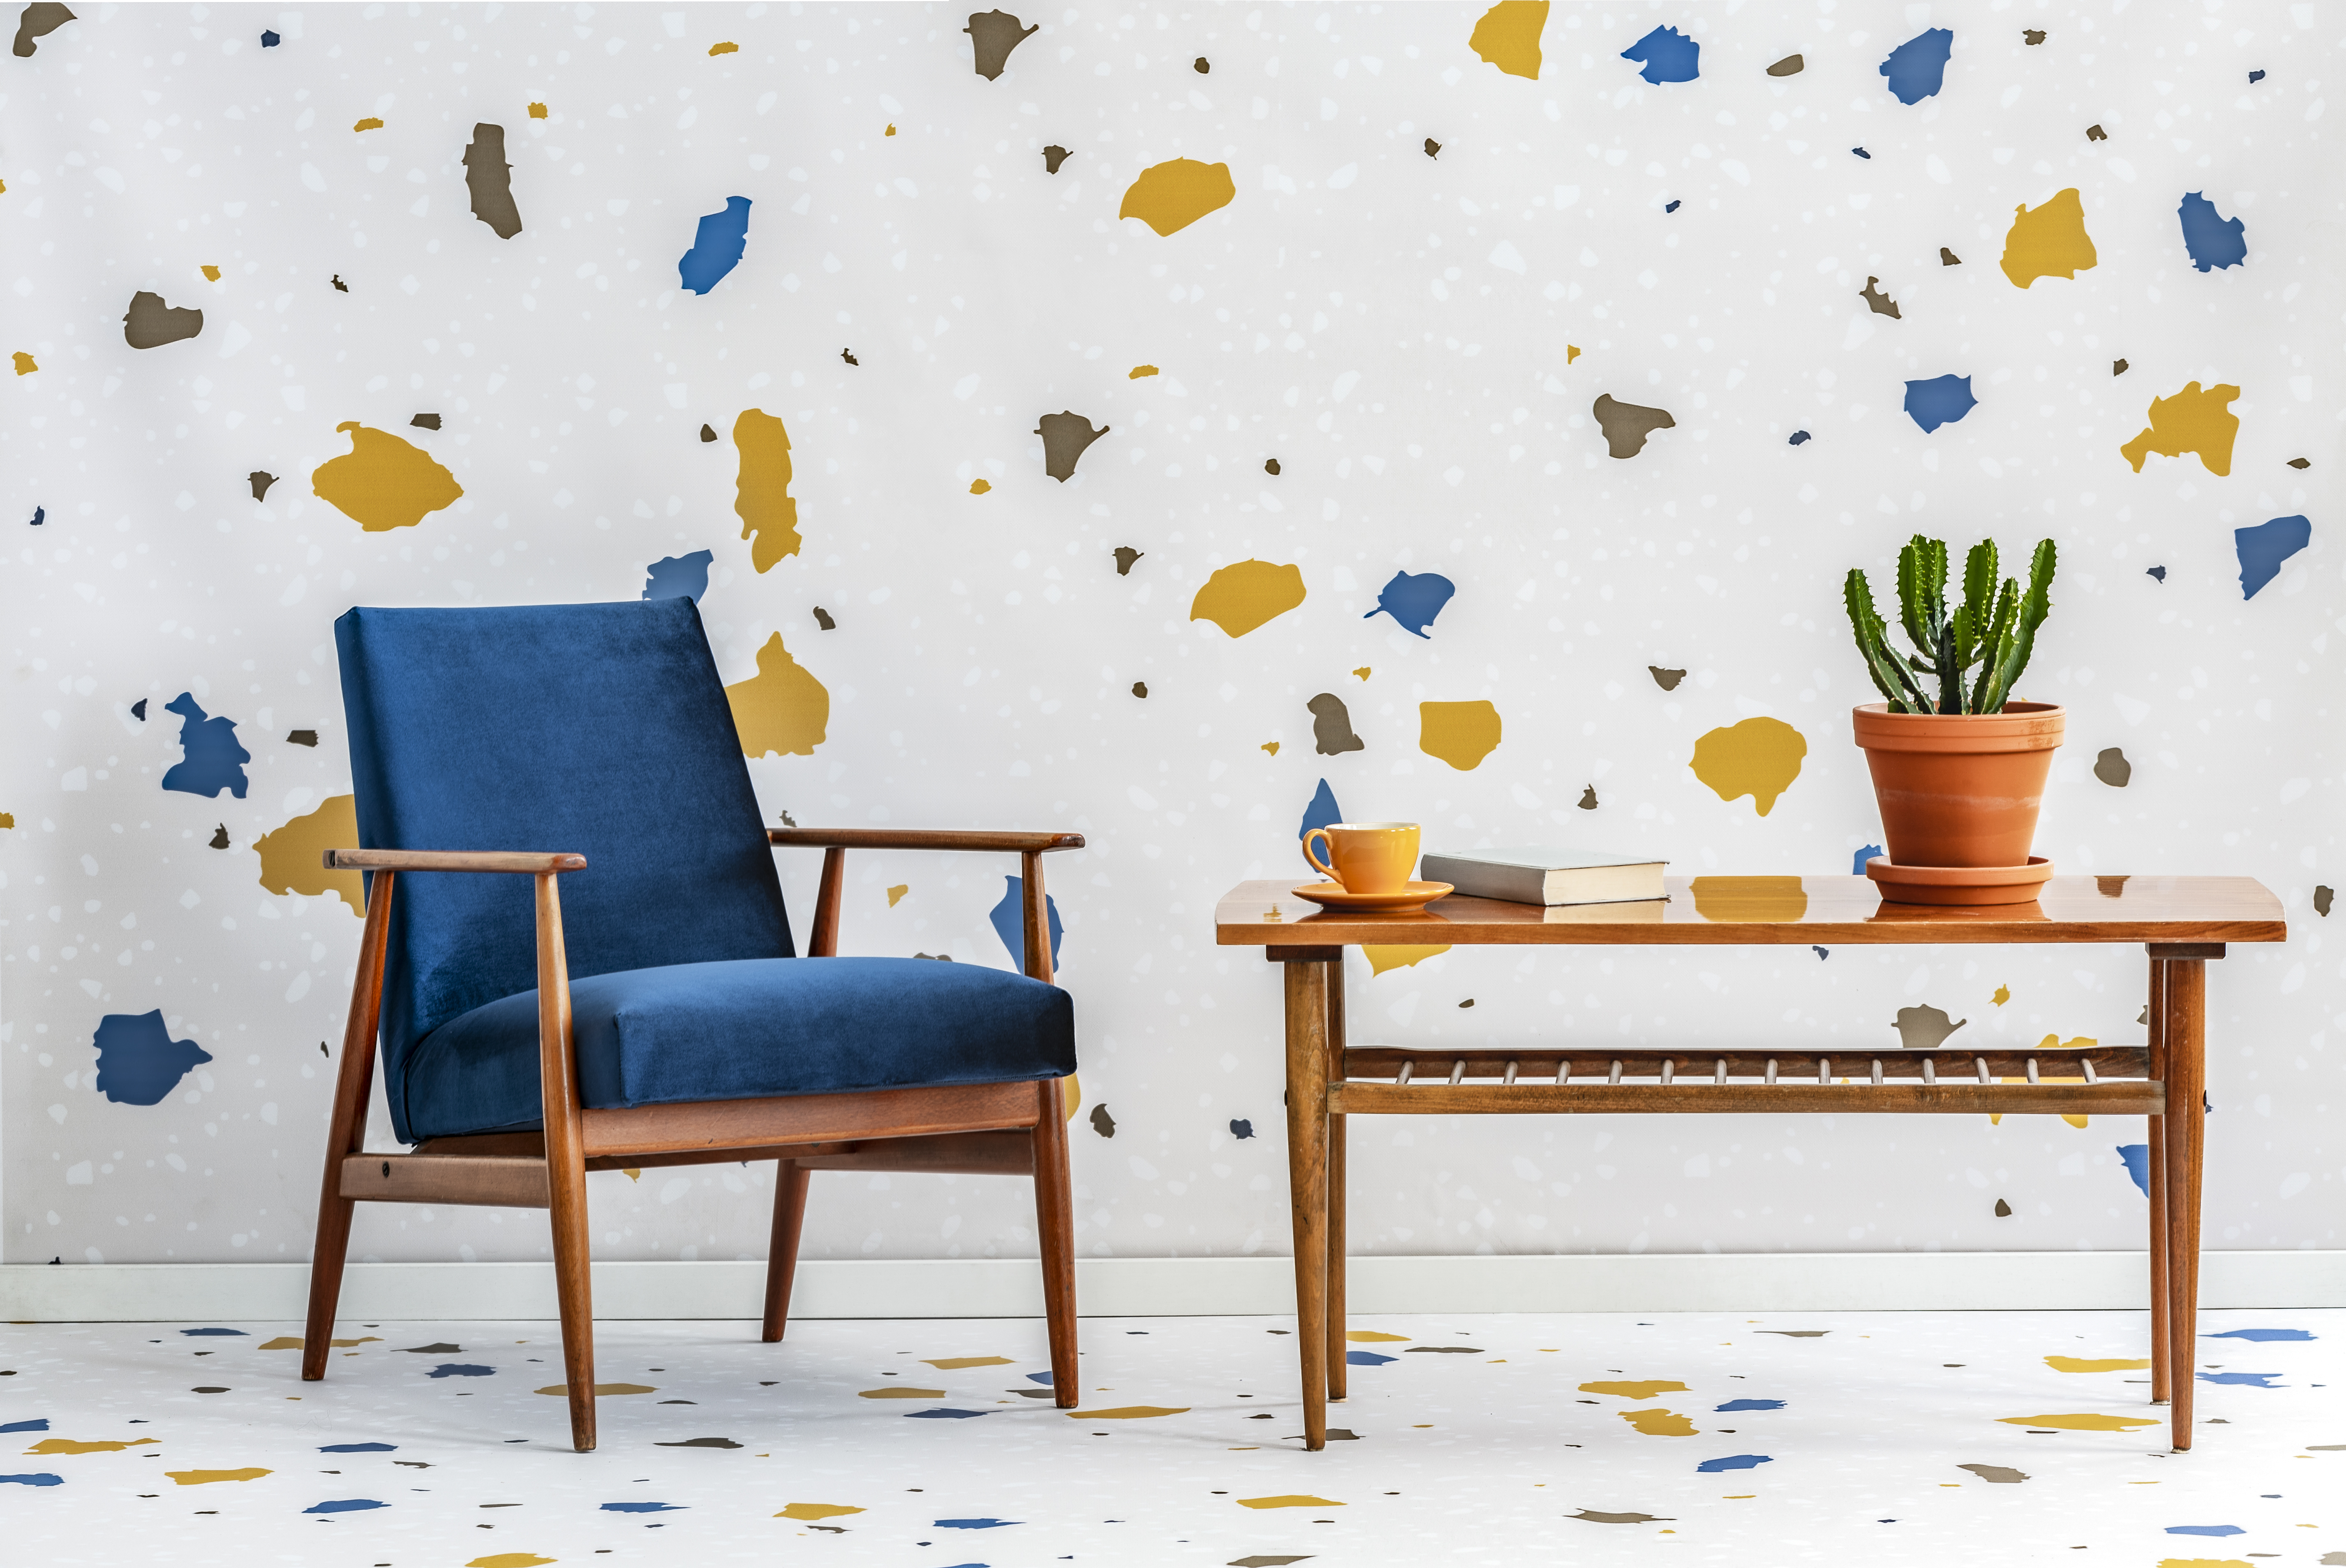 Terrazzo used to be kitschy. Now it's on everything from Spalding basketballs to Madewell dresses.